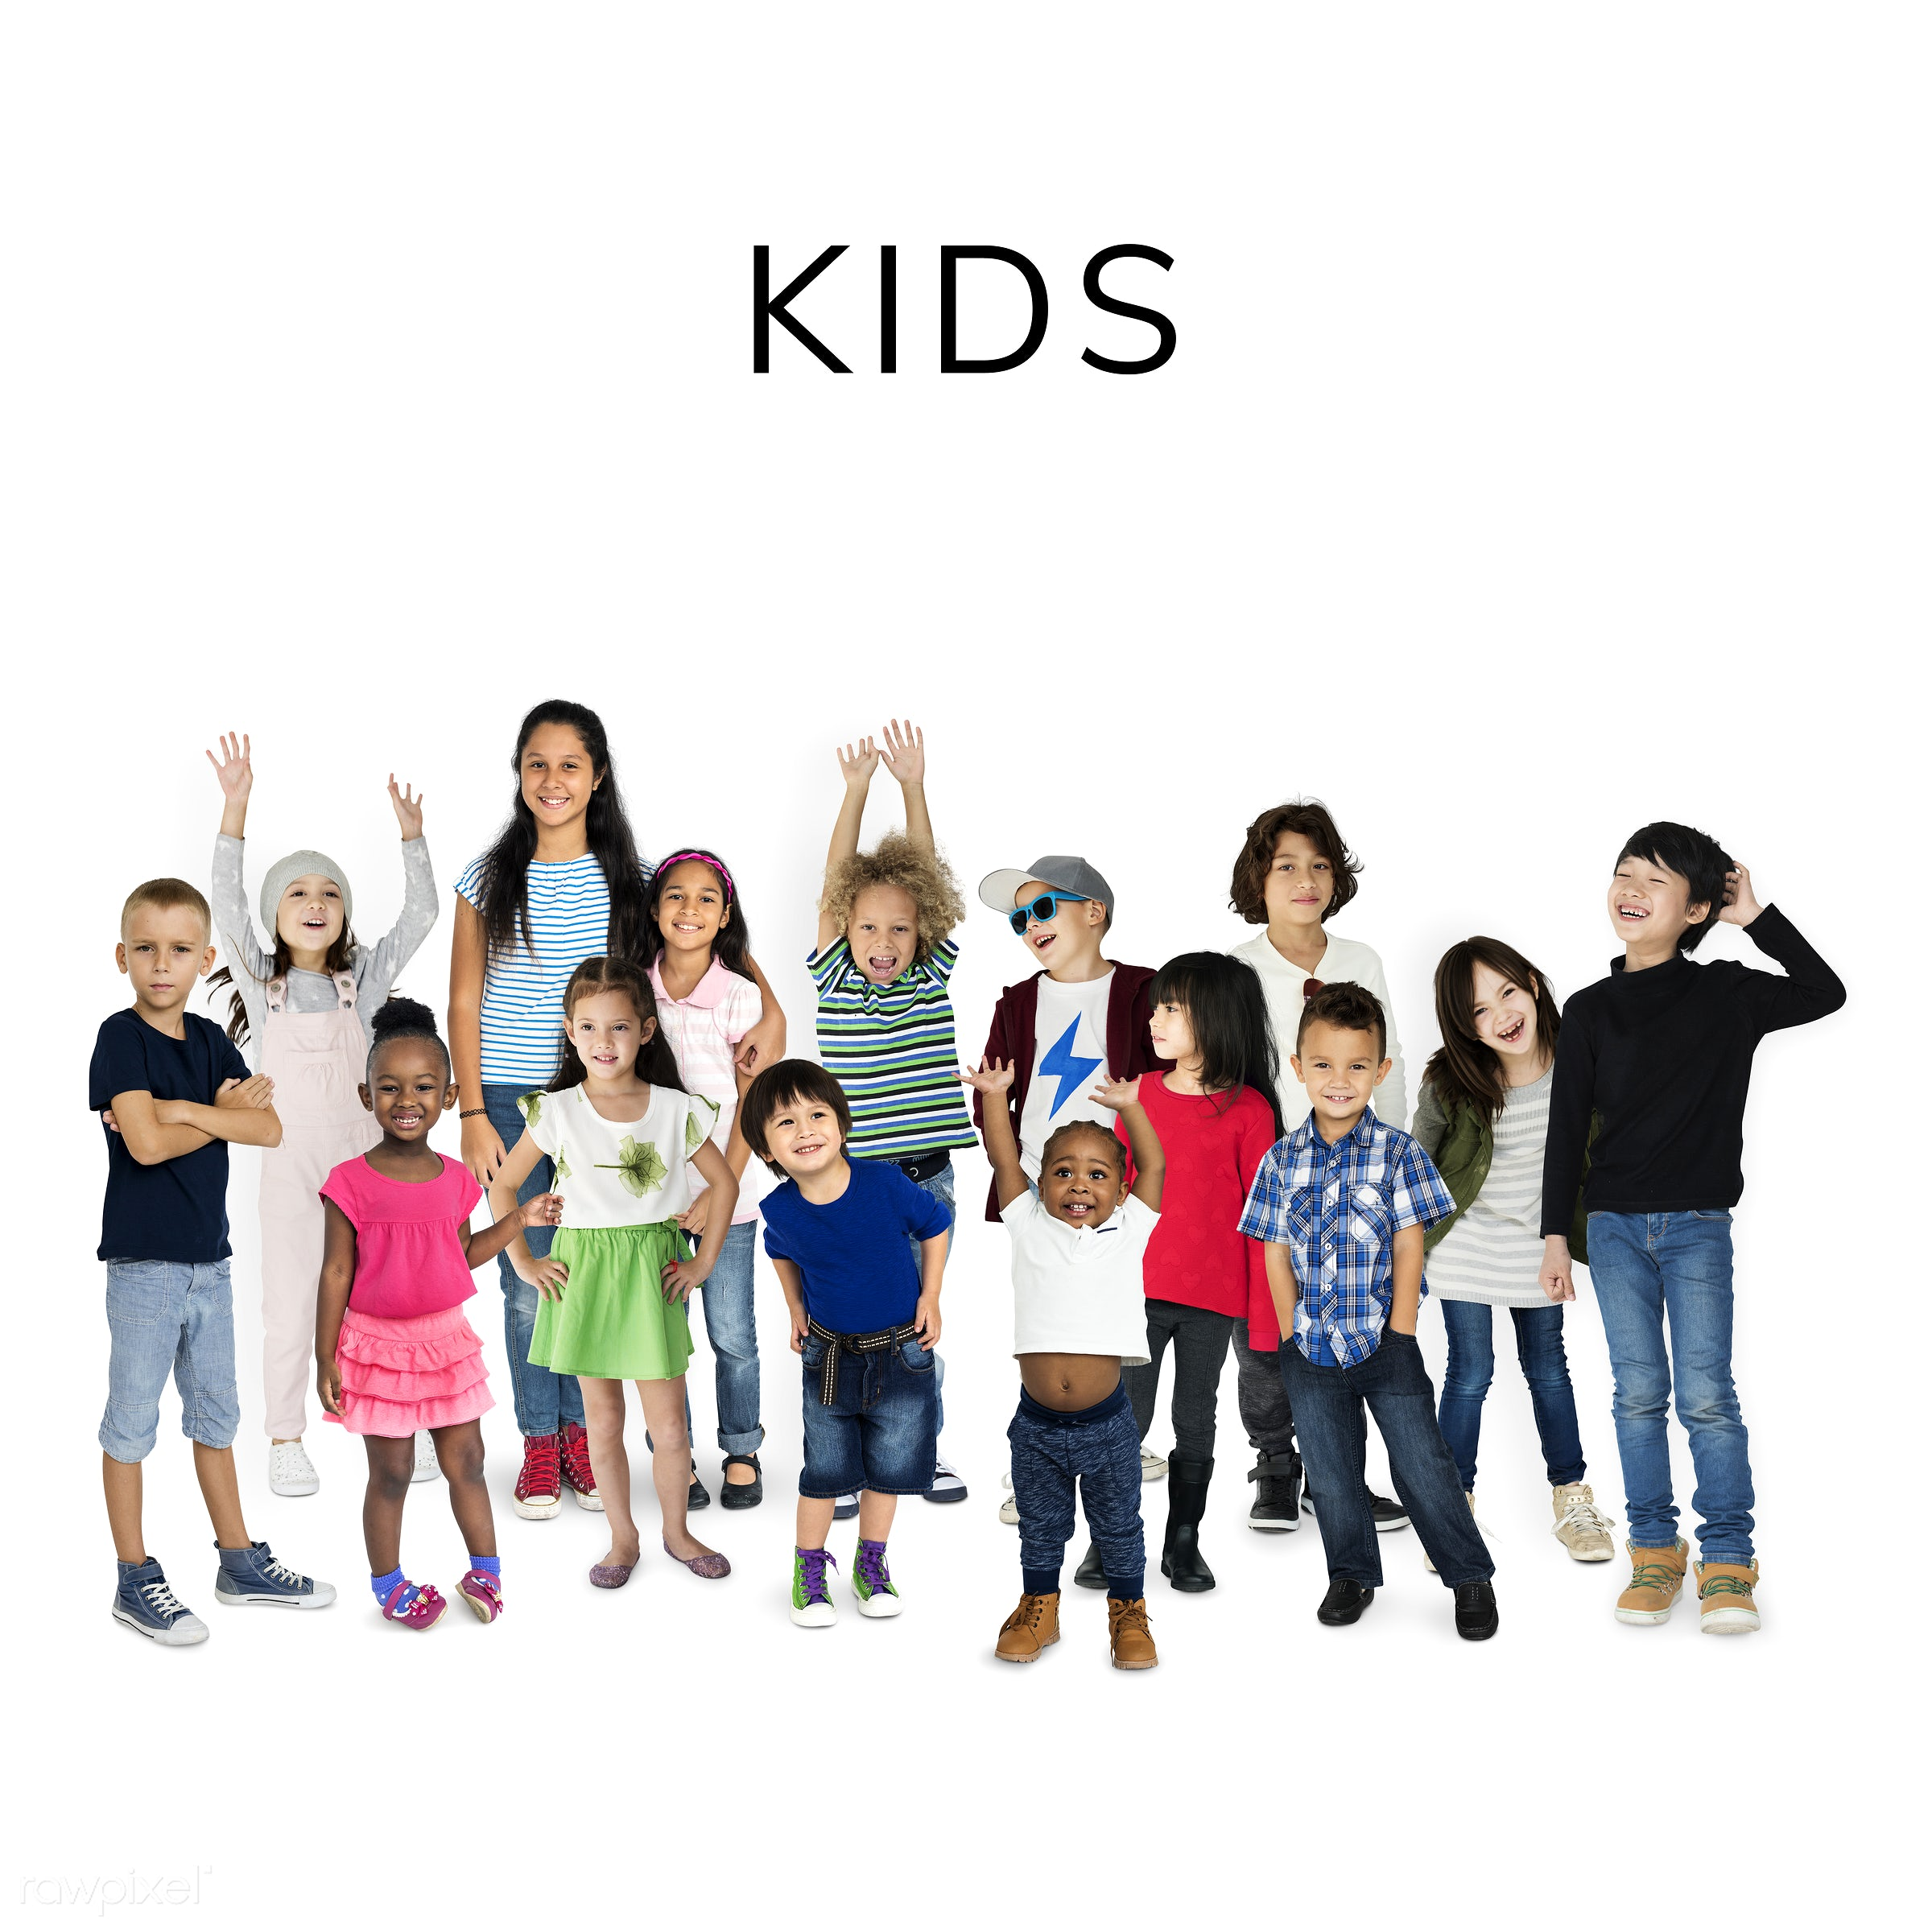 studio, person, diverse, innocent, little, entertain, recreation, people, caucasian, asian, little girls, lifestyle,...